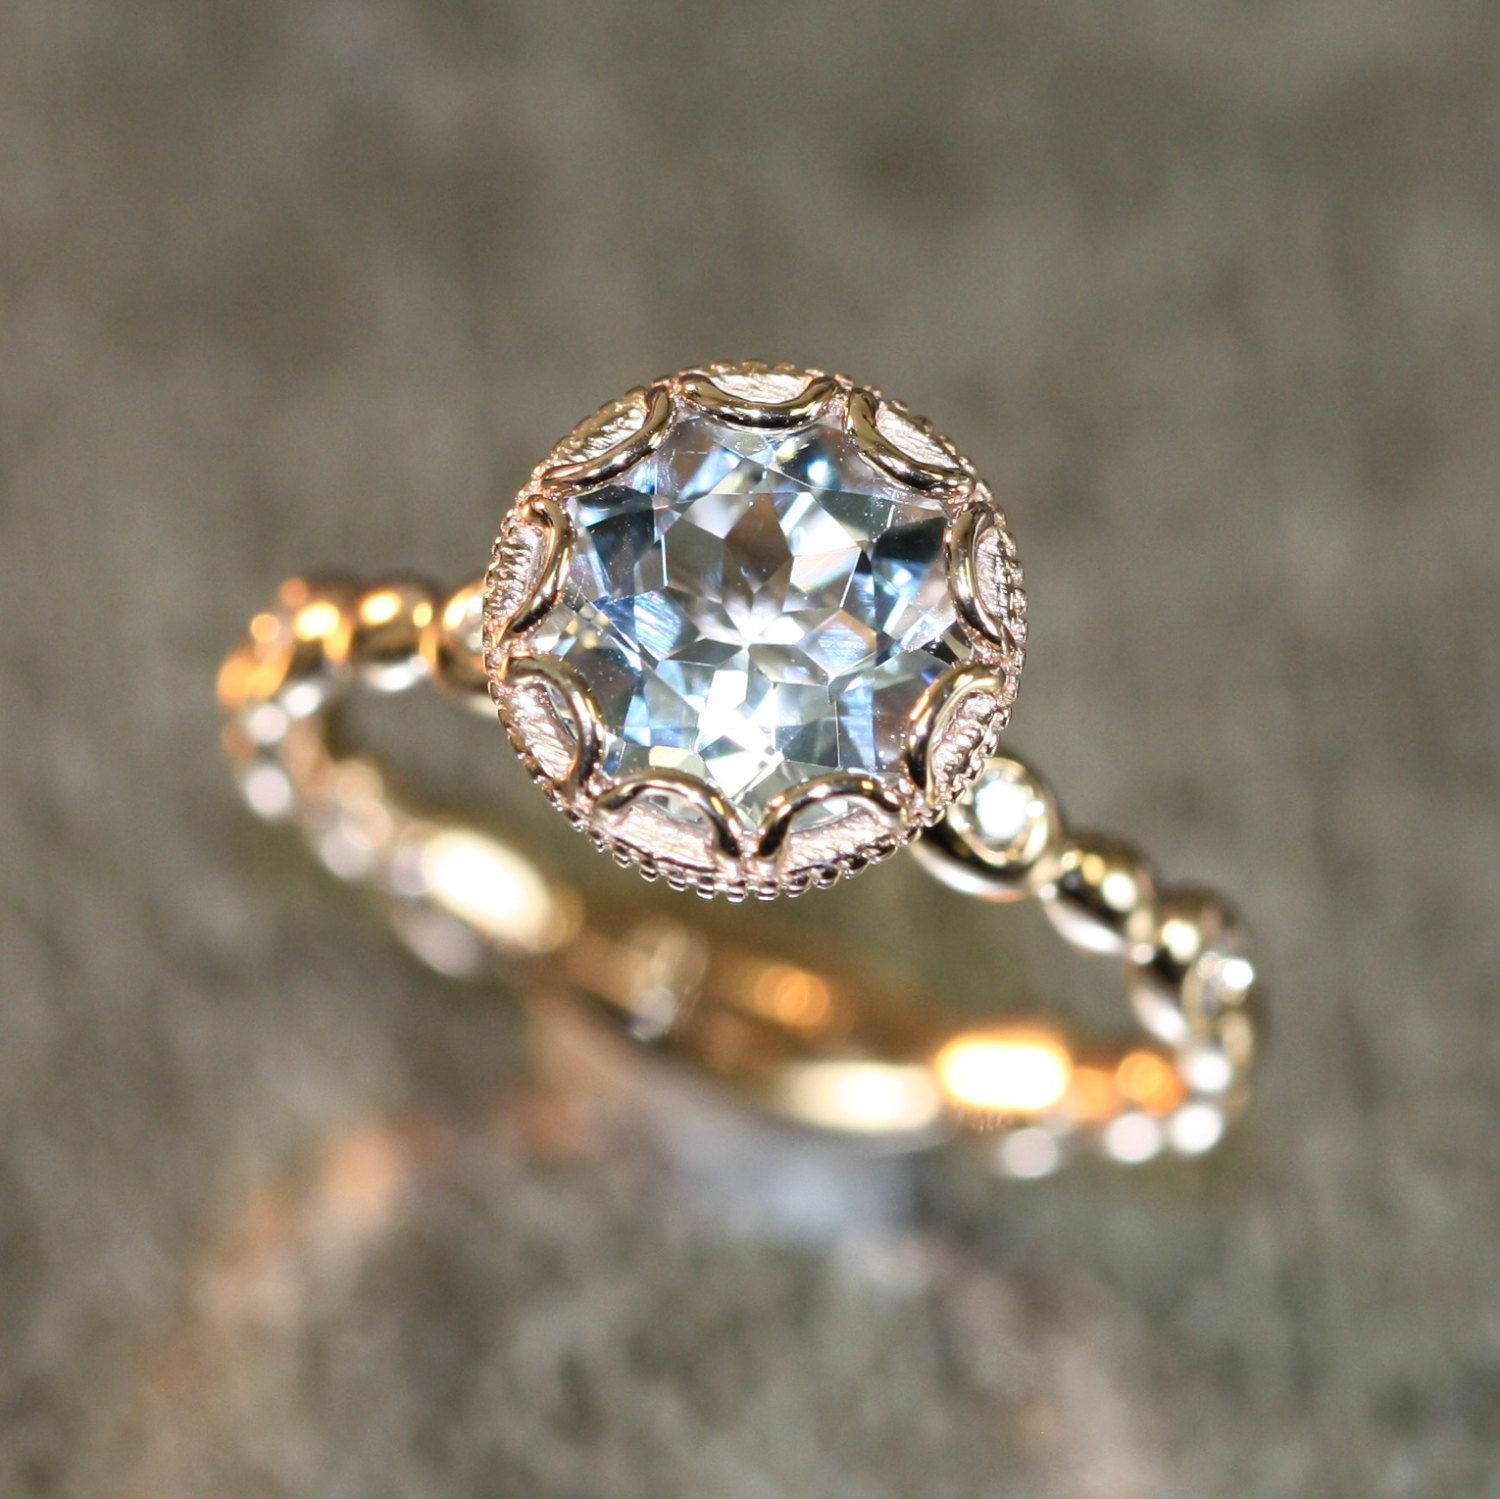 ring birthstone biddle click s banks natural aquamarine engagement item expand bailey to diamond halo full rings